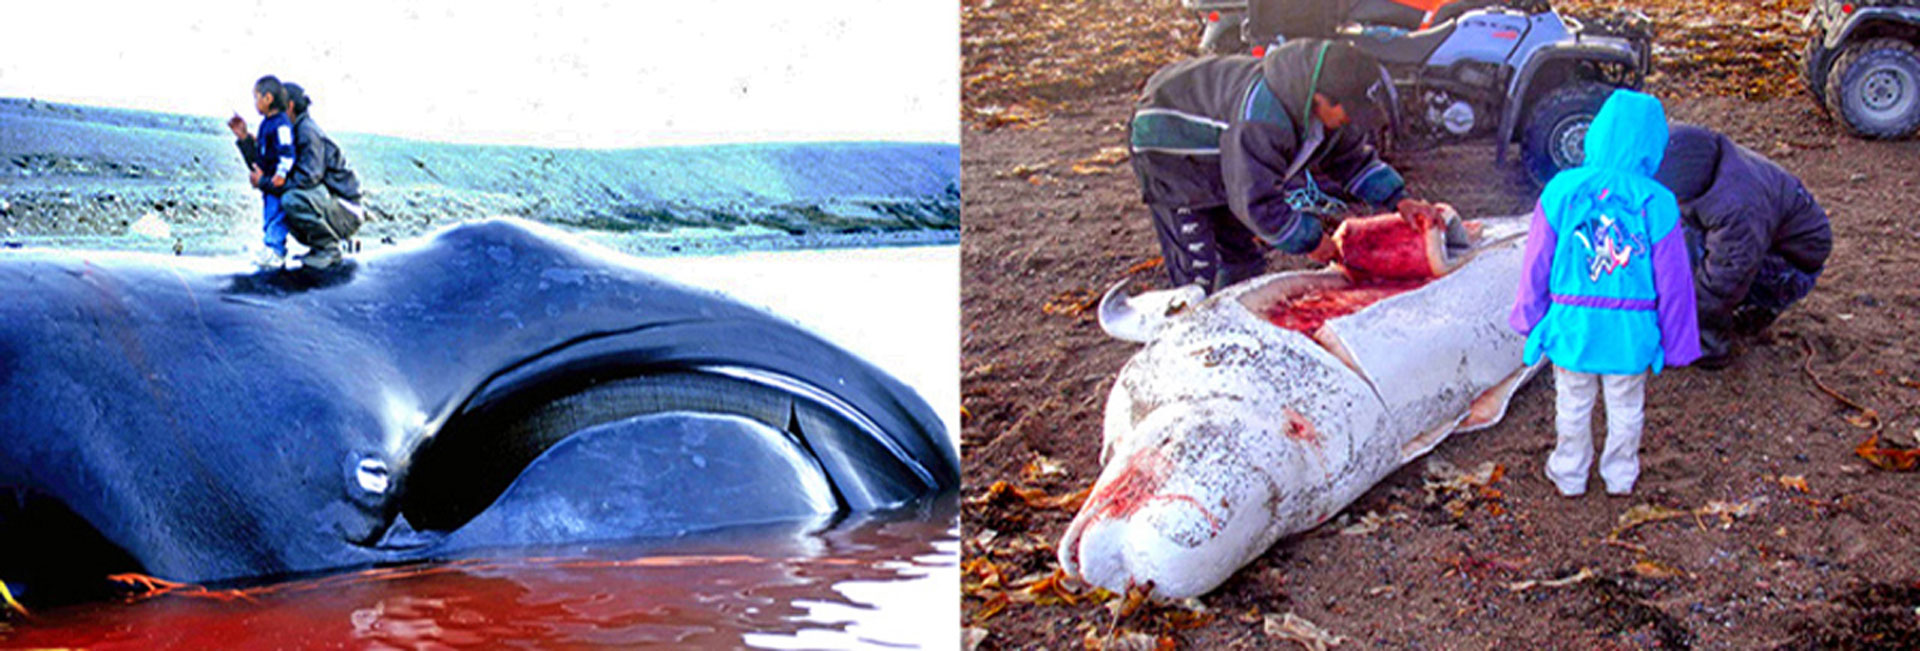 Left image: Bowhead whale caught in Igloolik, Nunavut. Photo: Ansgar Walk / Right image: A Beluga whale is flensed for its Maktaaq which is a source of vitamin C in the diet of some Inuit. Photo: Polargeo - http://bit.ly/1pmtfKQ